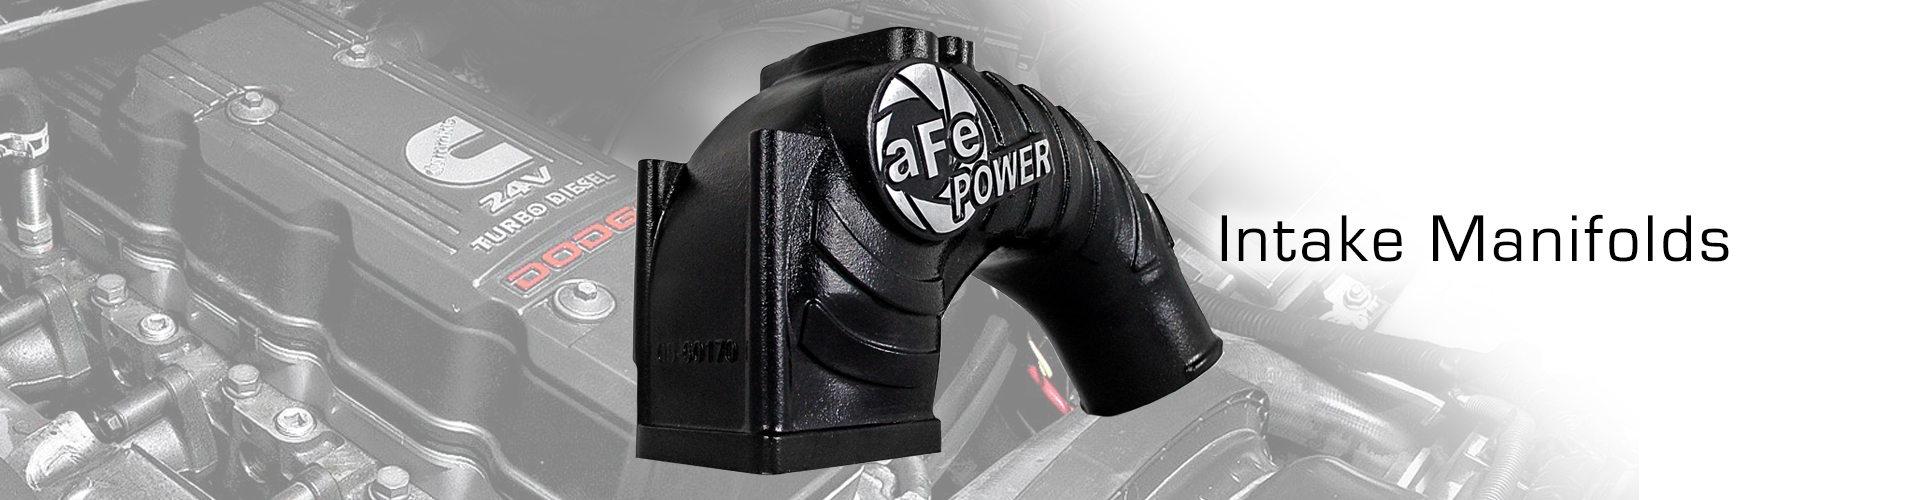 Diesel Intake and Turbo Manifolds | aFe POWER